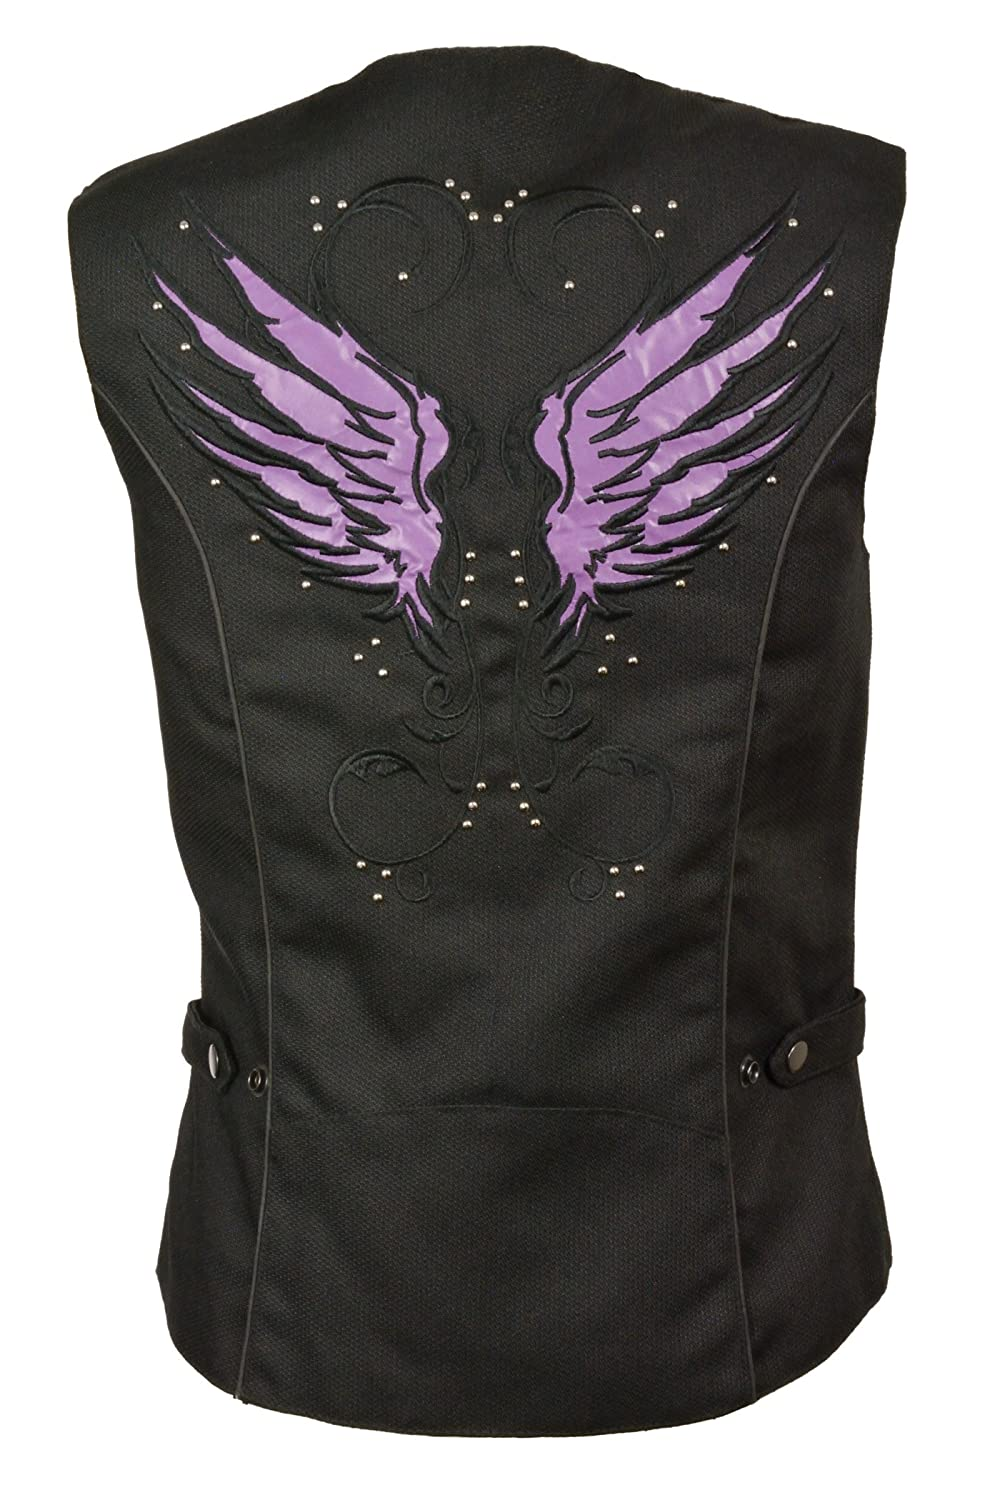 Milwaukee Performance Womens Doublon Vest with Wings Black//Black, X-Small